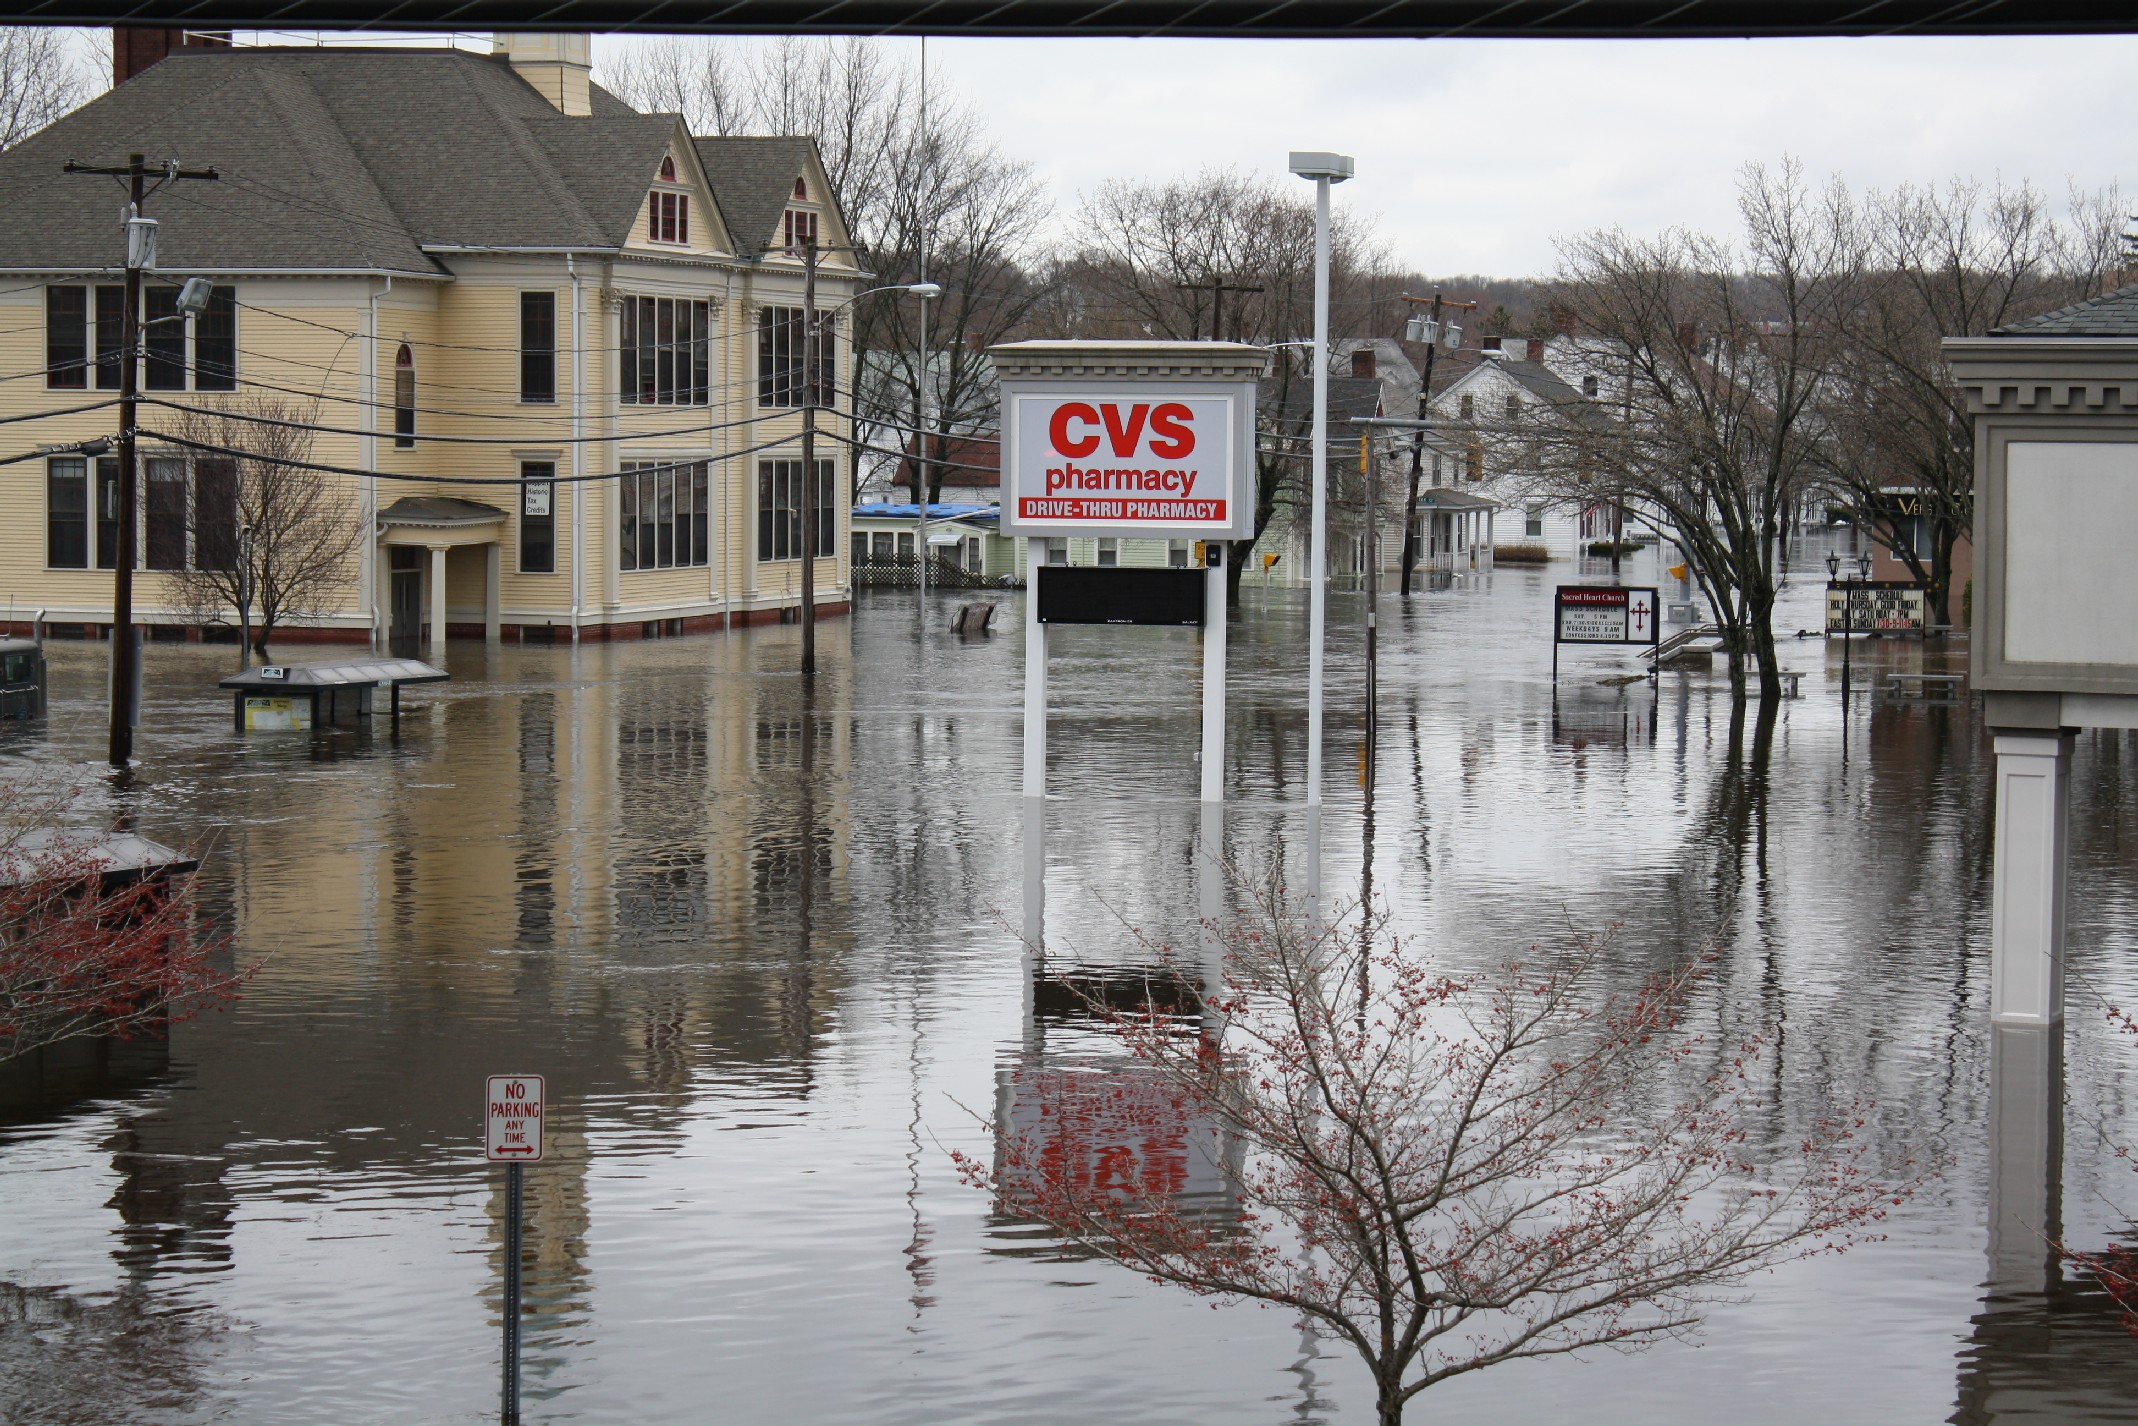 Record Flooding Along the Pawtuxet River in Rhode Island